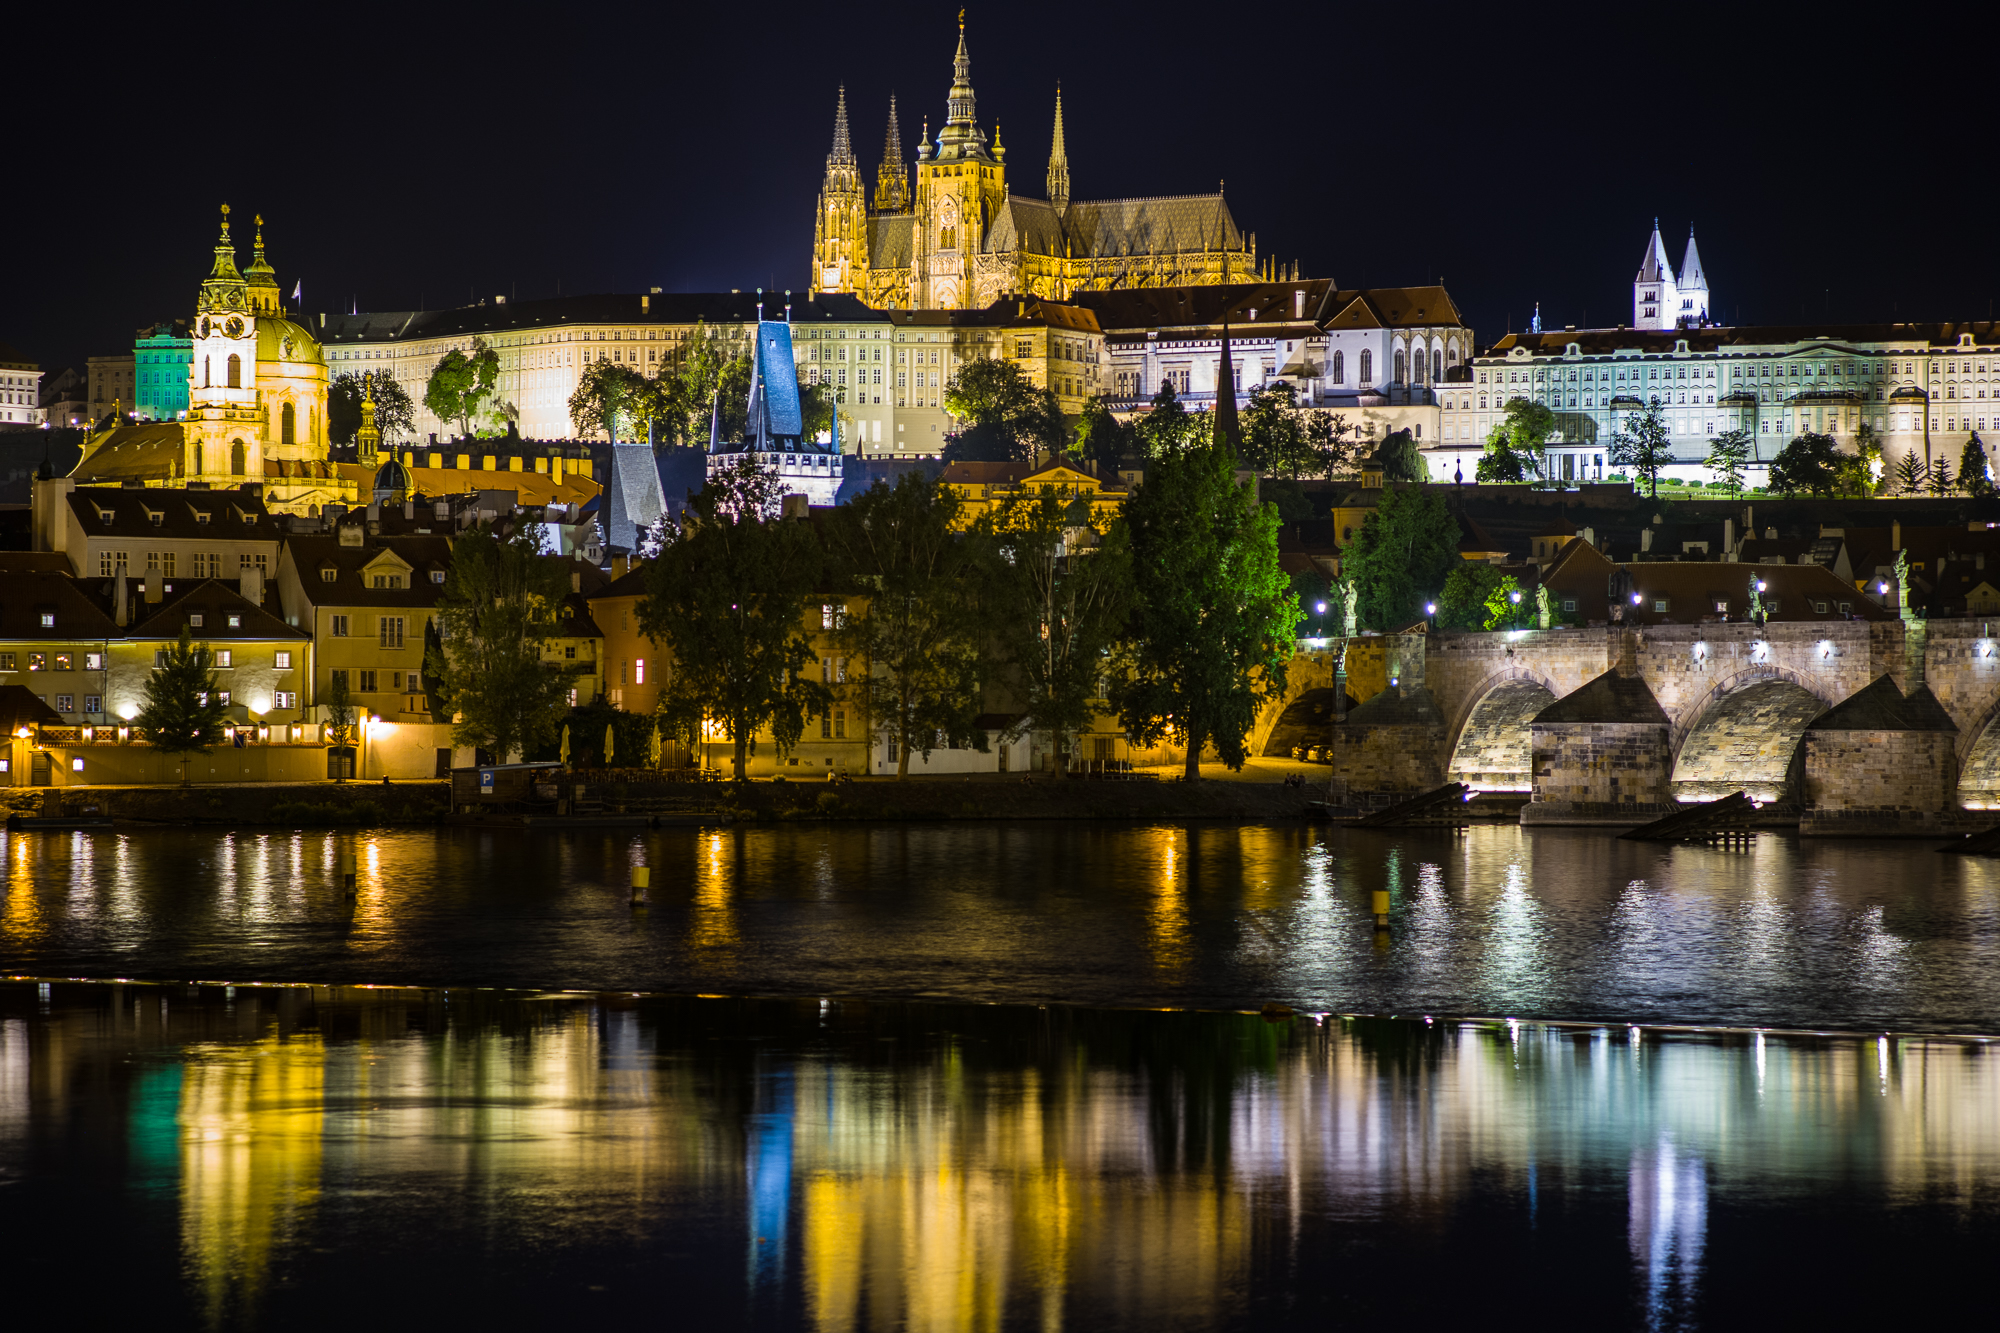 Prague Castle and the Charles Bridge at night as seen from the banks of the Vltava River